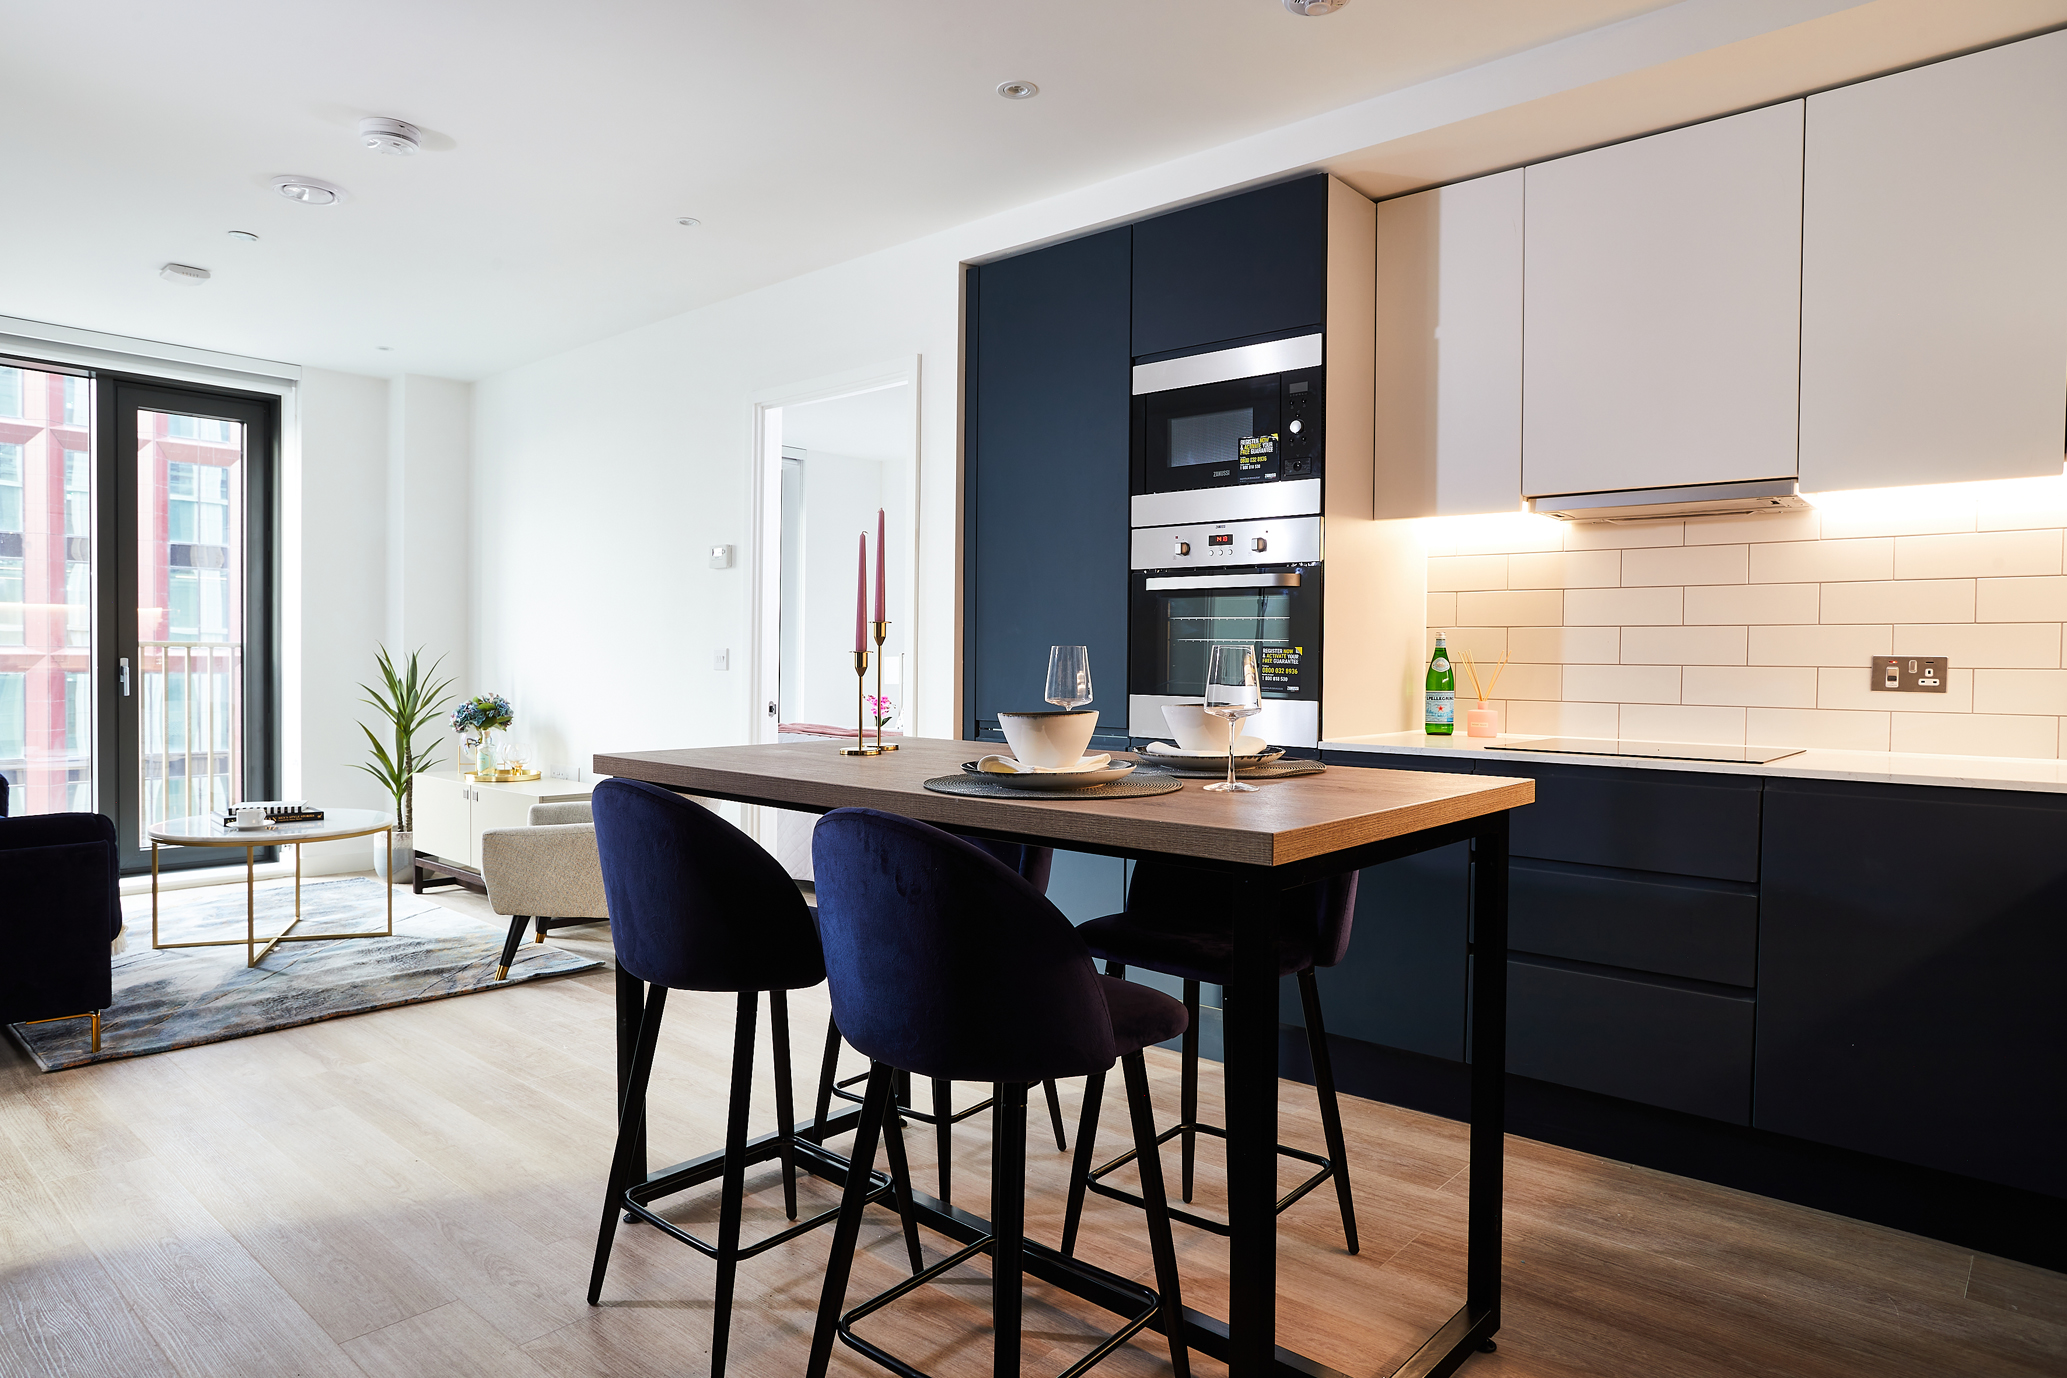 First Phase of Build-to-Rent Kitchen Fitout Is Completed